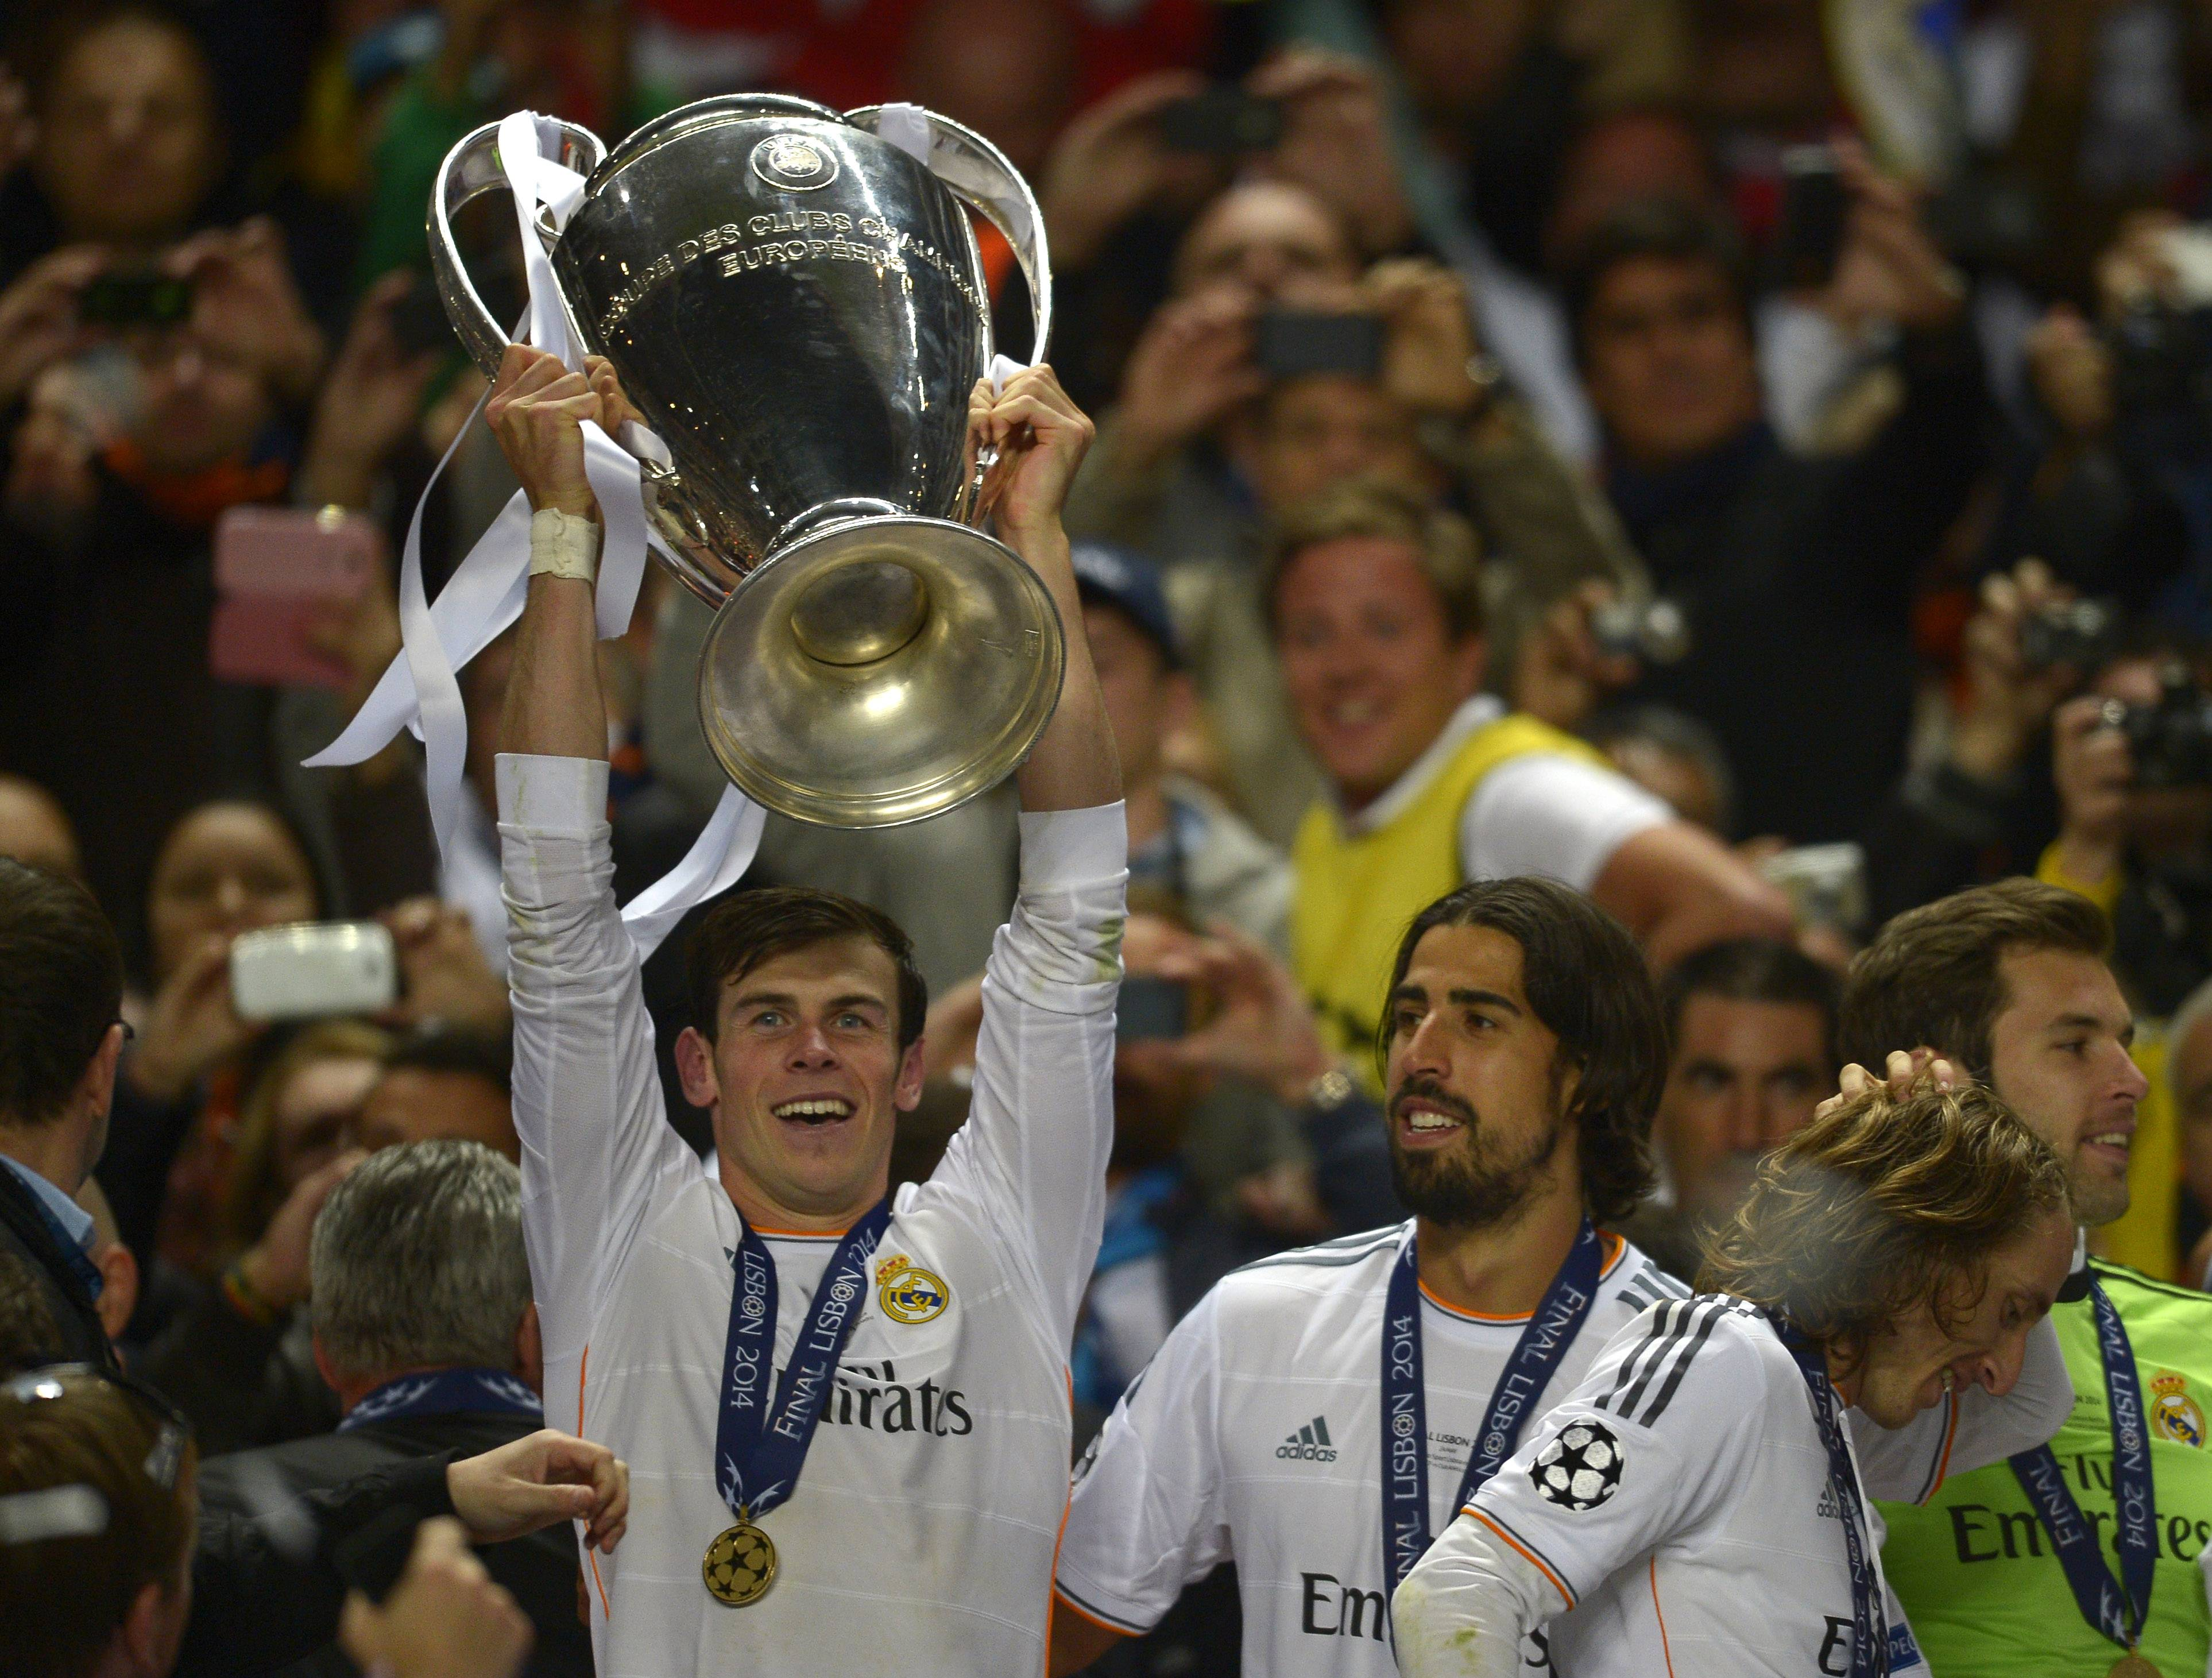 Real's Gareth Bale, lifts the Champion League trophy, after his team won the Champions League final soccer match between Atletico Madrid and Real Madrid in Lisbon, Portugal, Saturday, May 24, 2014.